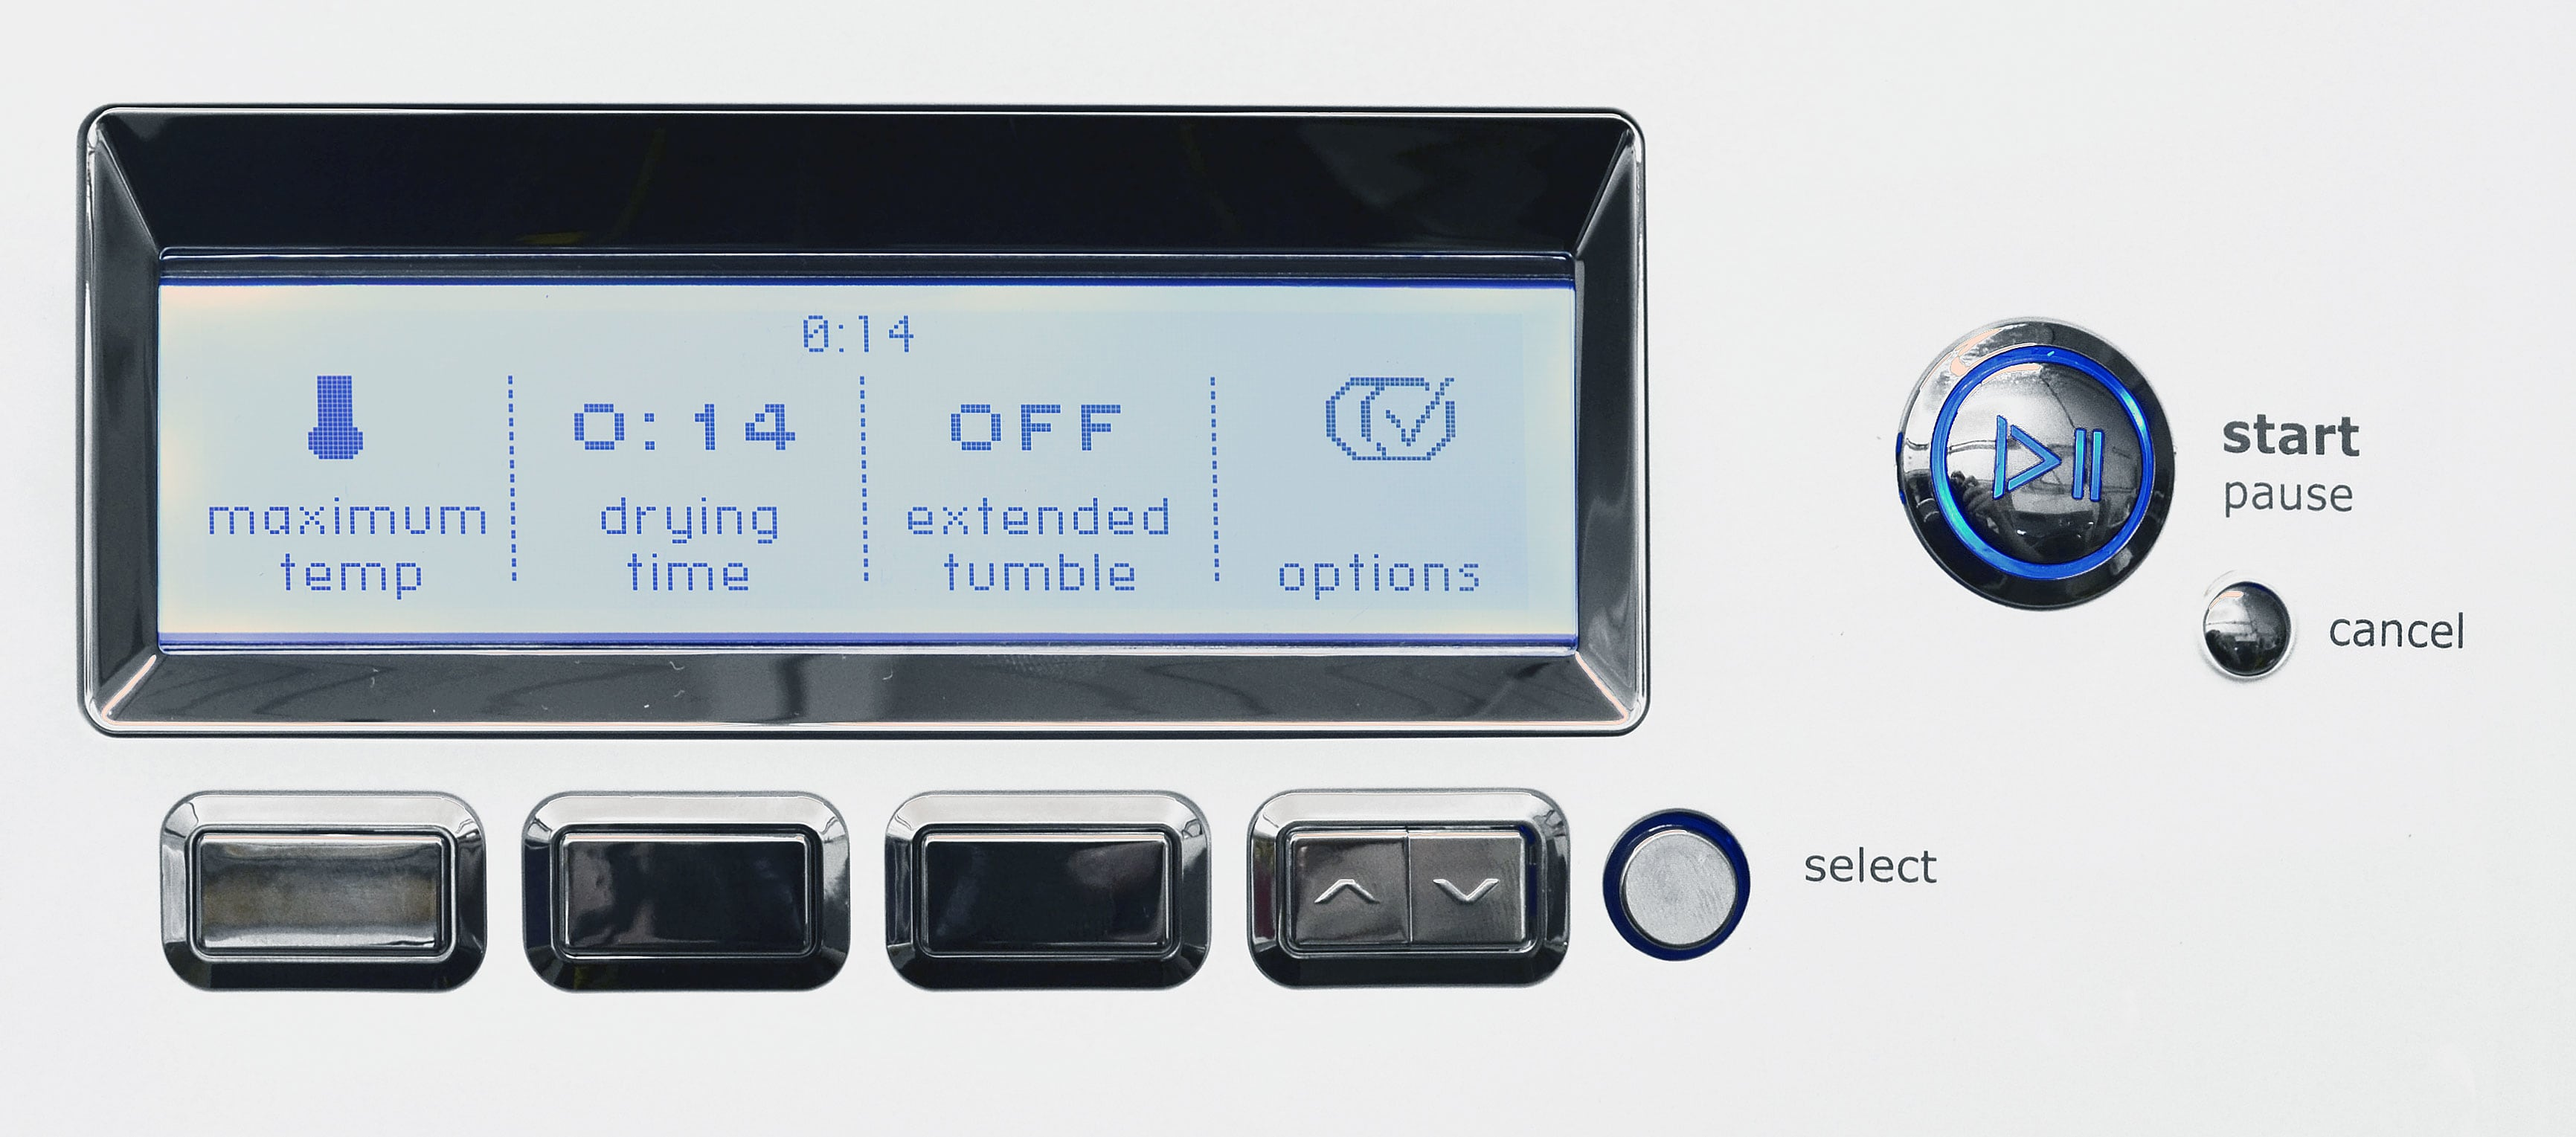 The Electrolux EWMGD70JIW's control panel certainly looks streamlined, but the four-button interface creates a rabbit hole of features that you'll probably need the manual to navigate.